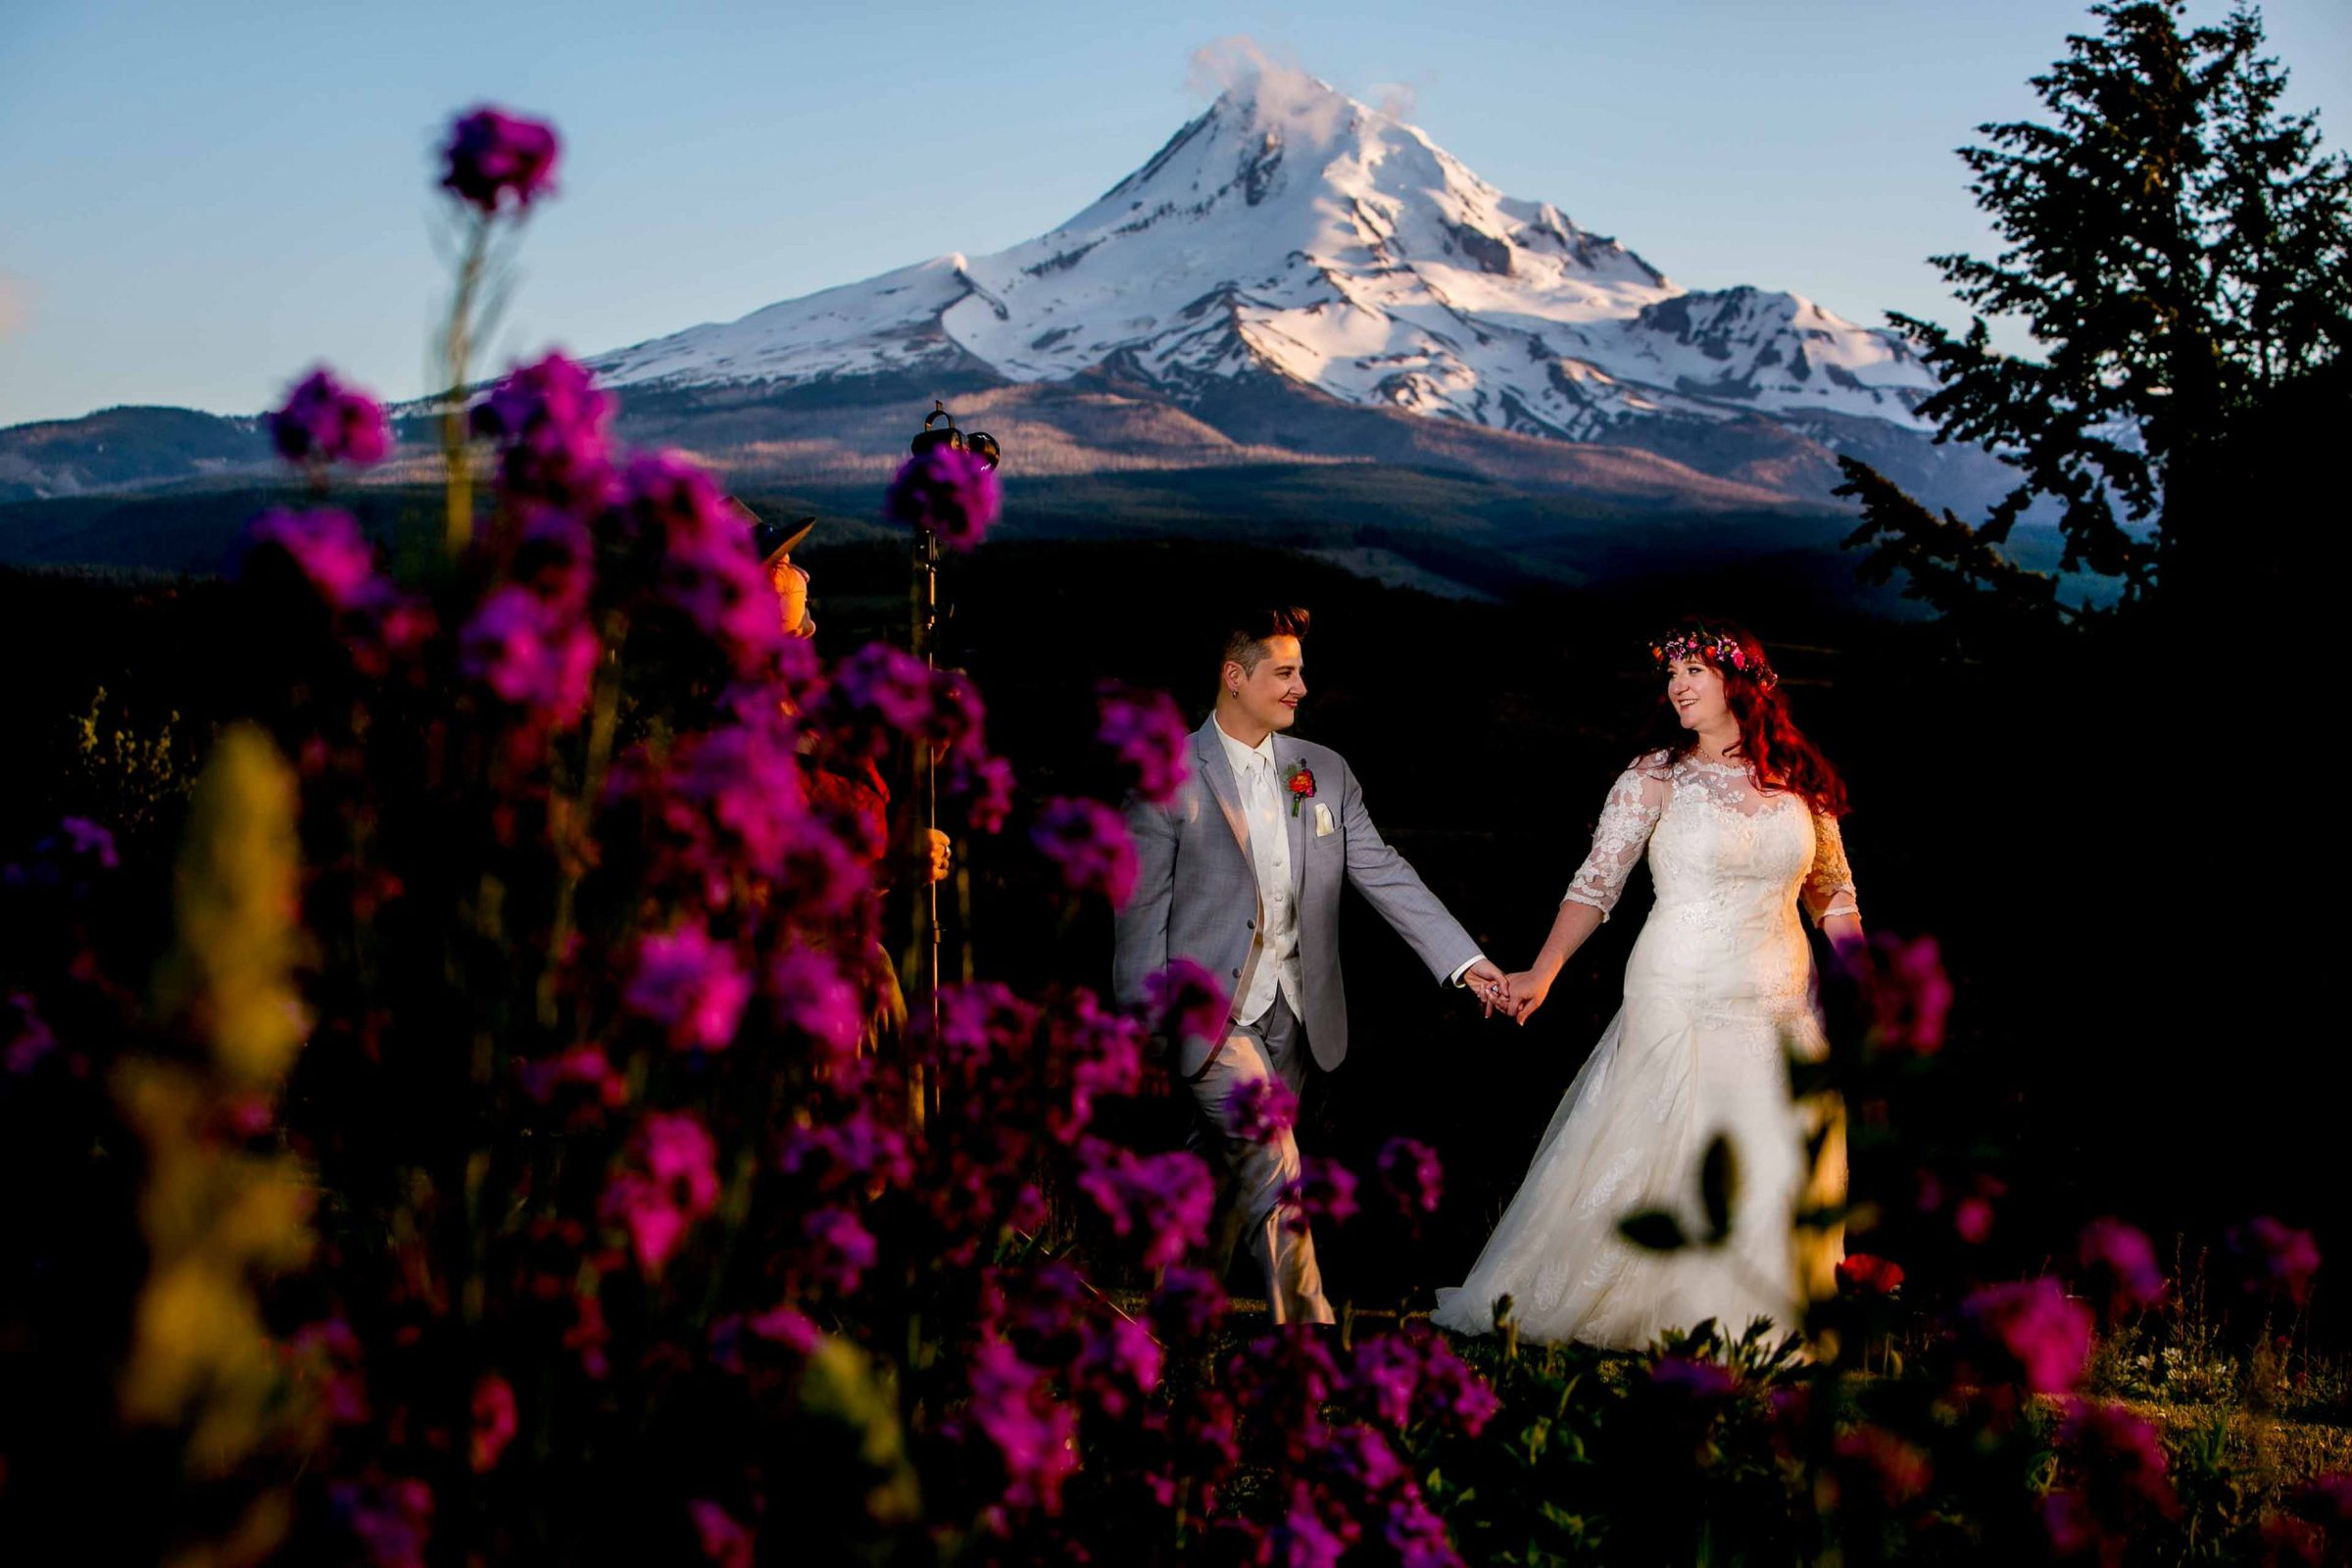 A bride and bride walking in the colorful flower field during a Mt Hood Organic Farms wedding at sunset